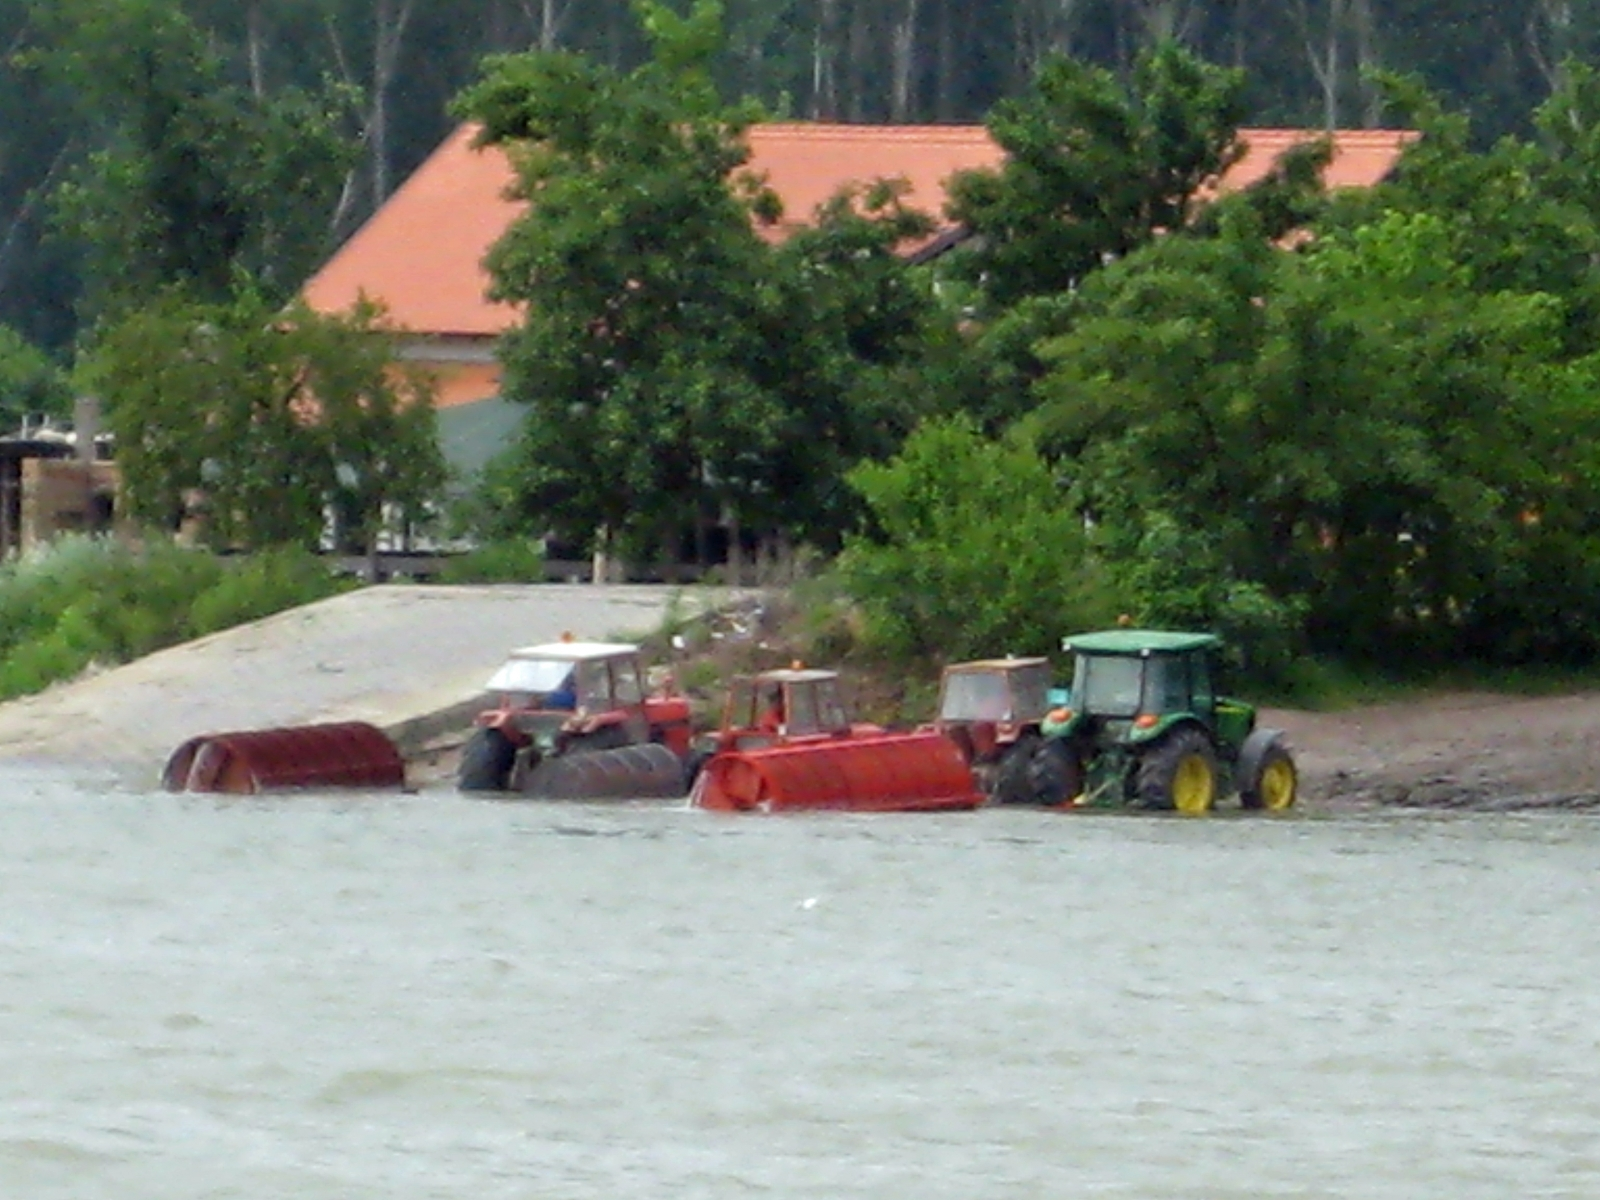 Rolling Barrels and Tractor on Danube